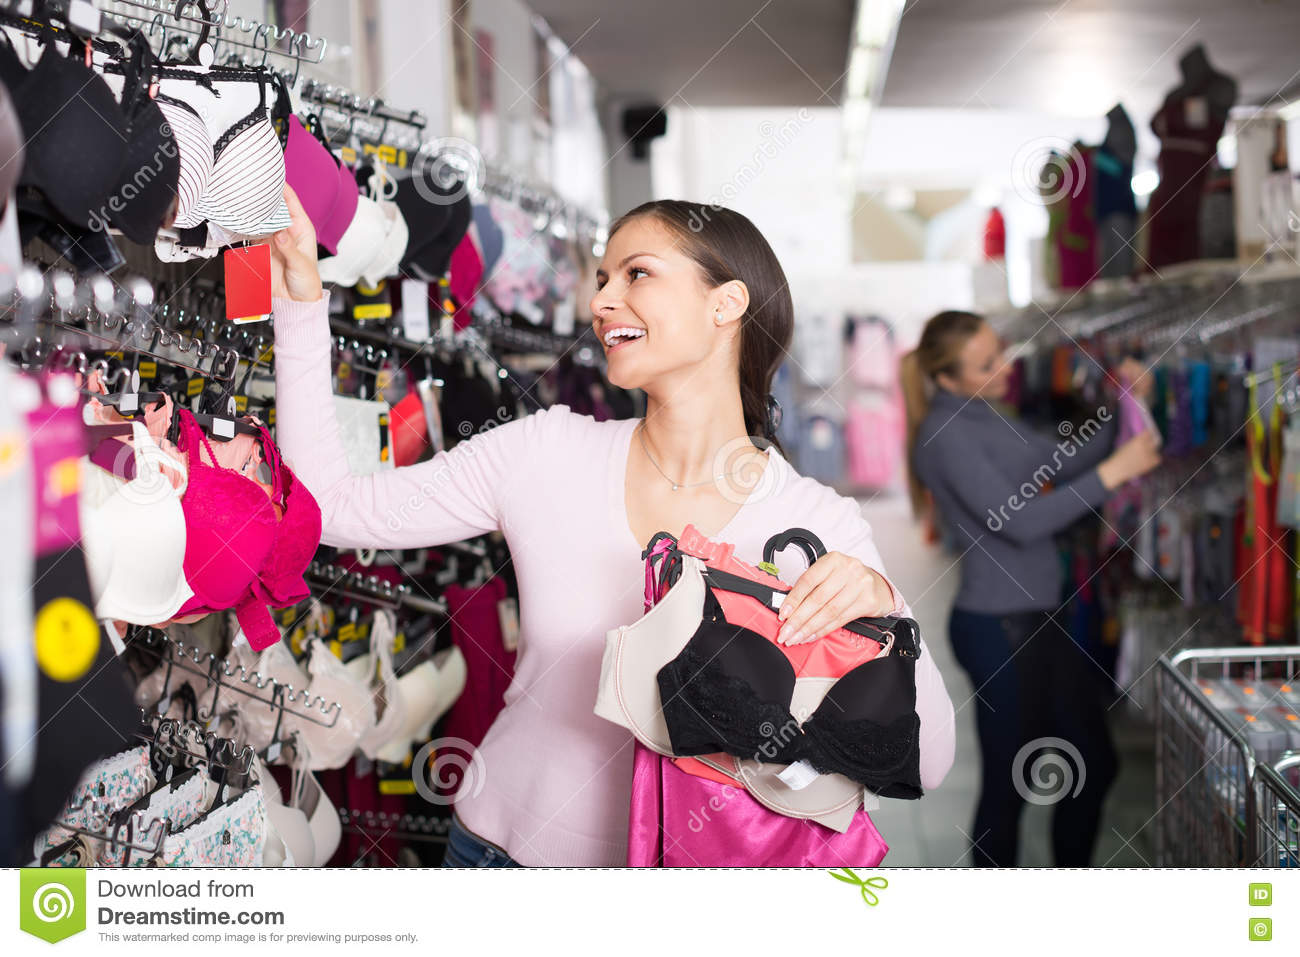 Woman Selecting Bra In Lingerie Store Stock Photo - Image: 72663651